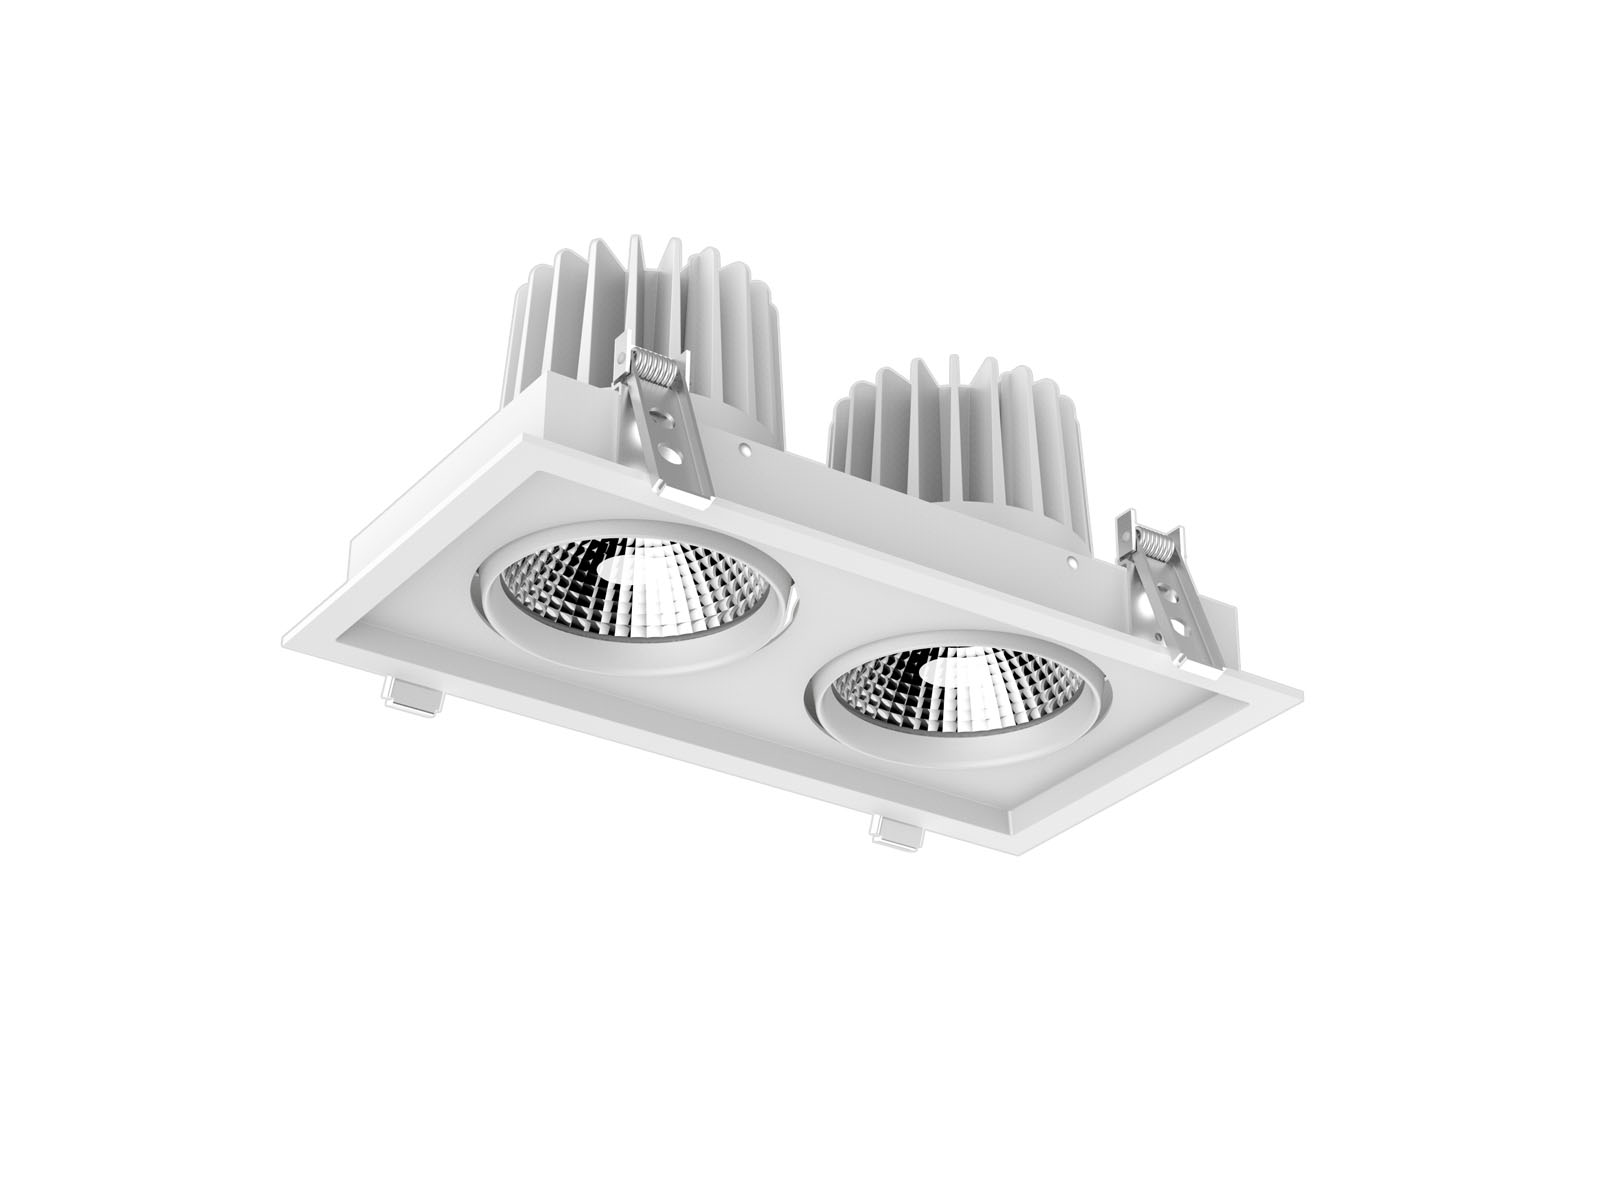 310X160mm CL67 2 Recessed Led Downlight